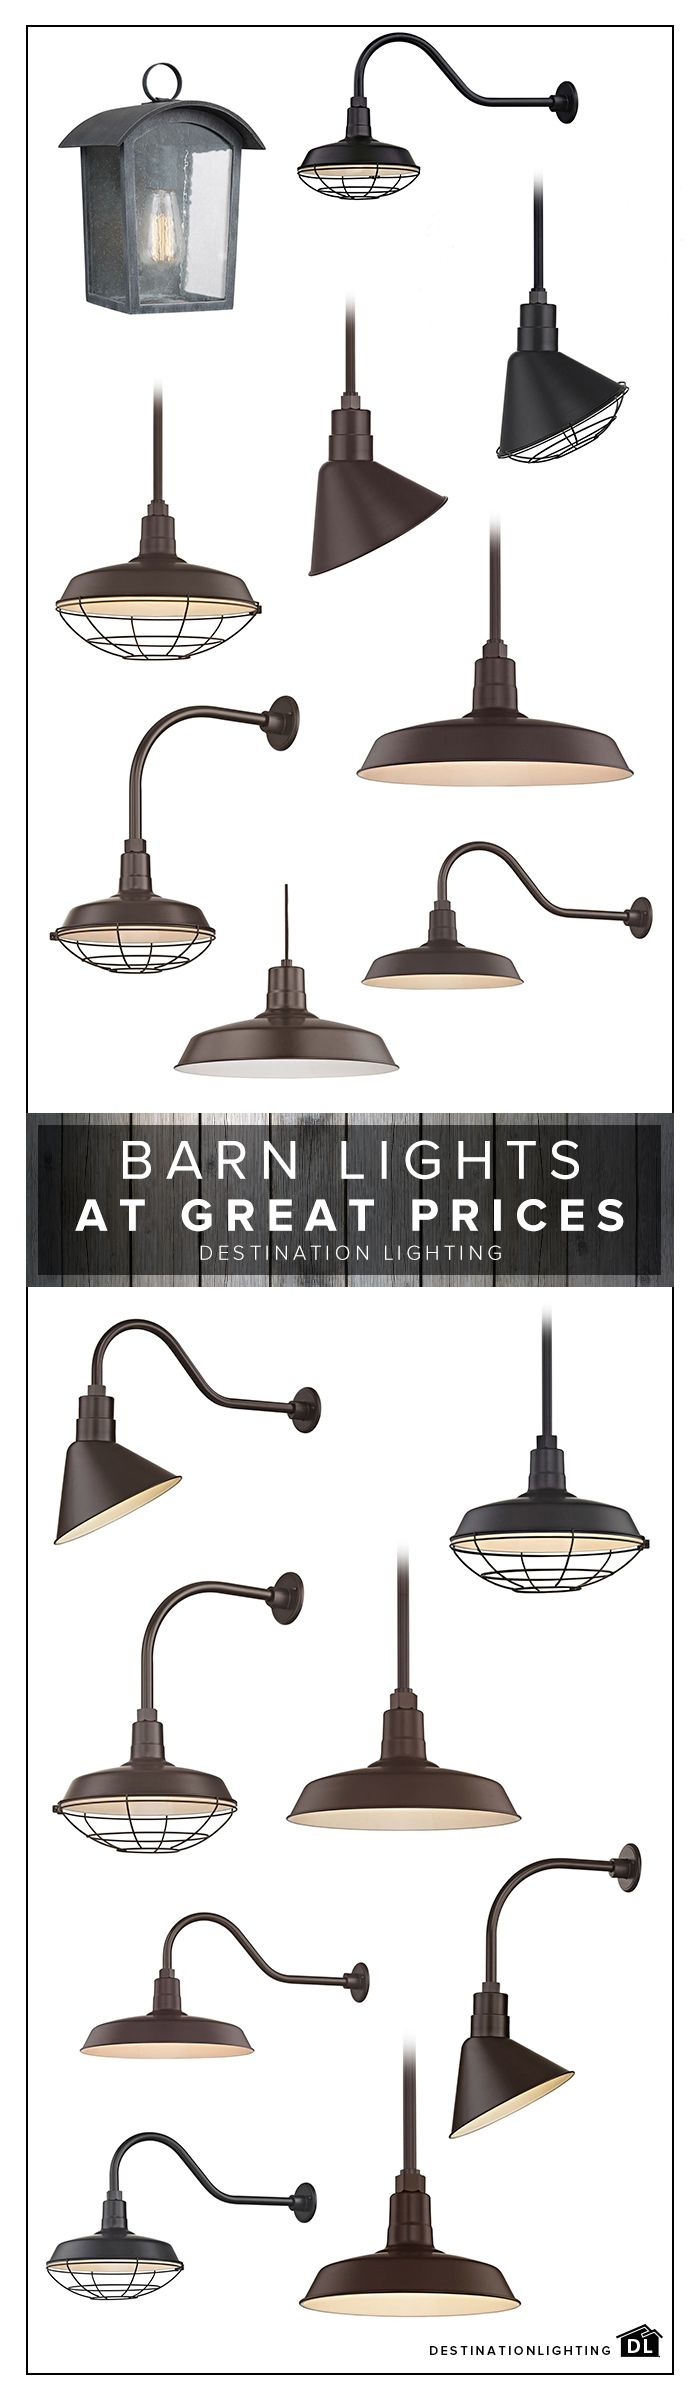 Barn Lighting includes vintage inspired pendants, wall lights, and outdoor fixtures. Check out our great selection at Destination Lighting.com!